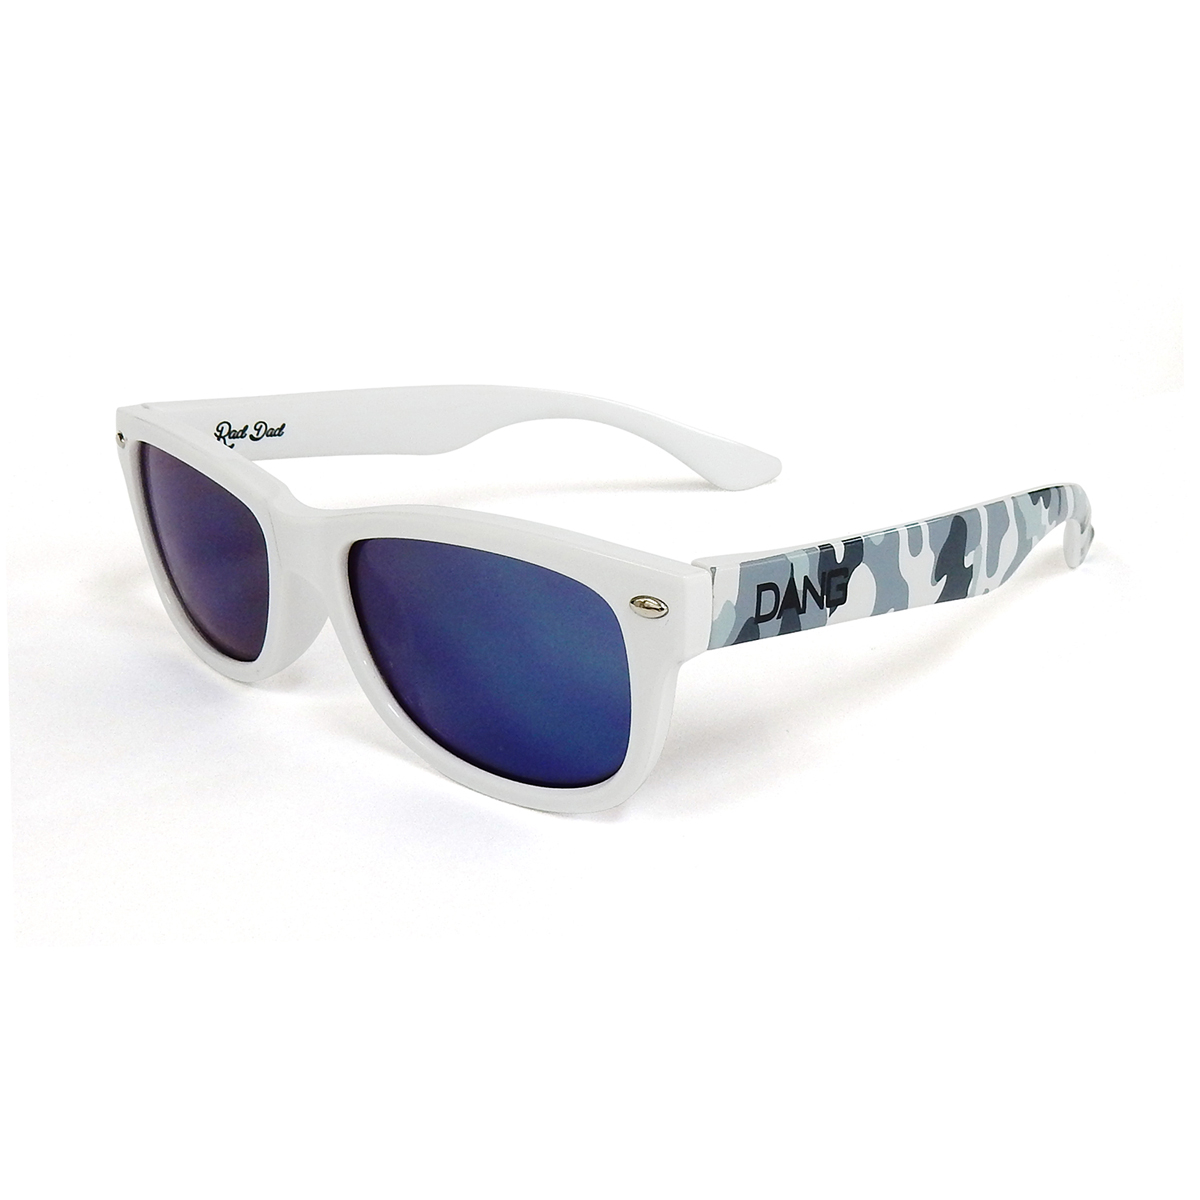 Dang Shades vidg00255 RAD DAD UT White / Gray Camo x Blue Mirror キッズサングラス